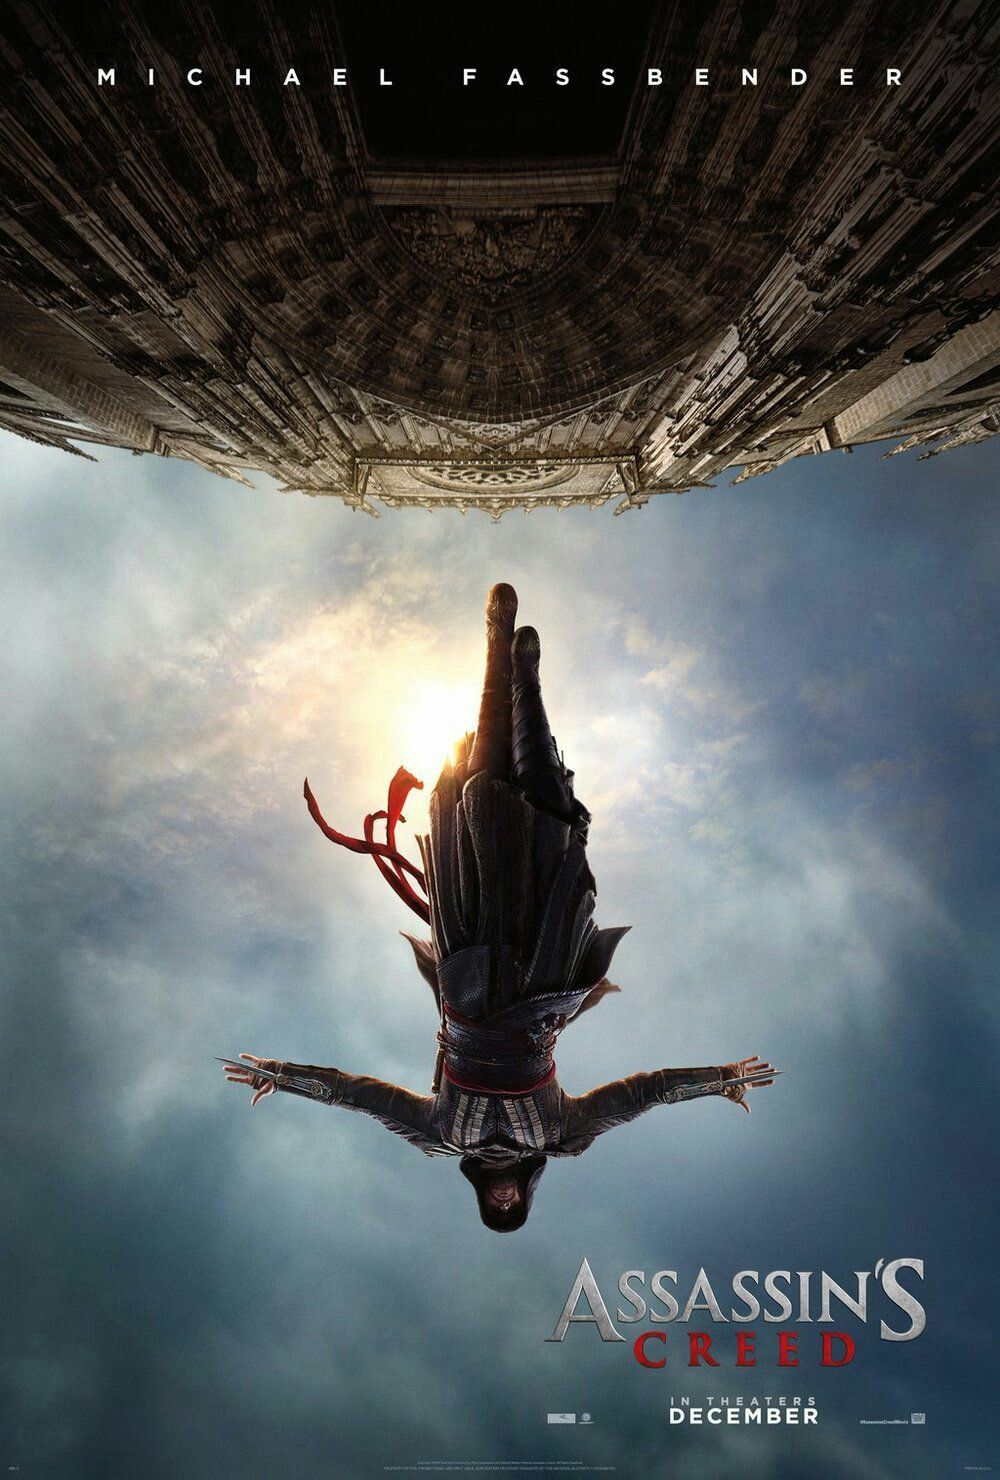 Those Of You Who Are A Assassins Creed Fan A New Movie Is Coming